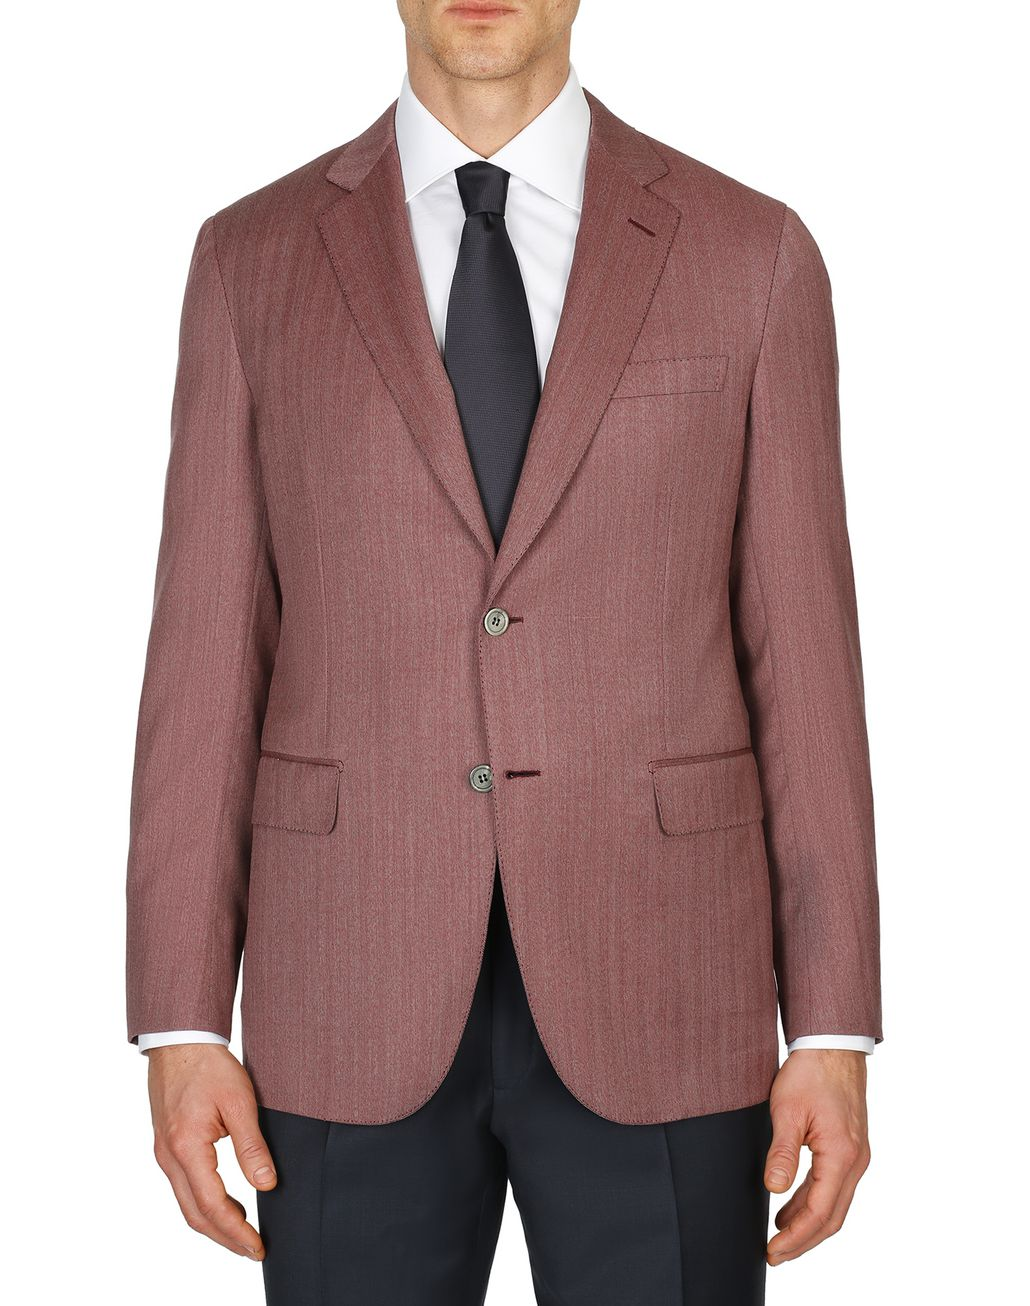 BRIONI Giacca Plume Bordeaux con Motivo a Spina di Pesce Suits & Jackets [*** pickupInStoreShippingNotGuaranteed_info ***] r